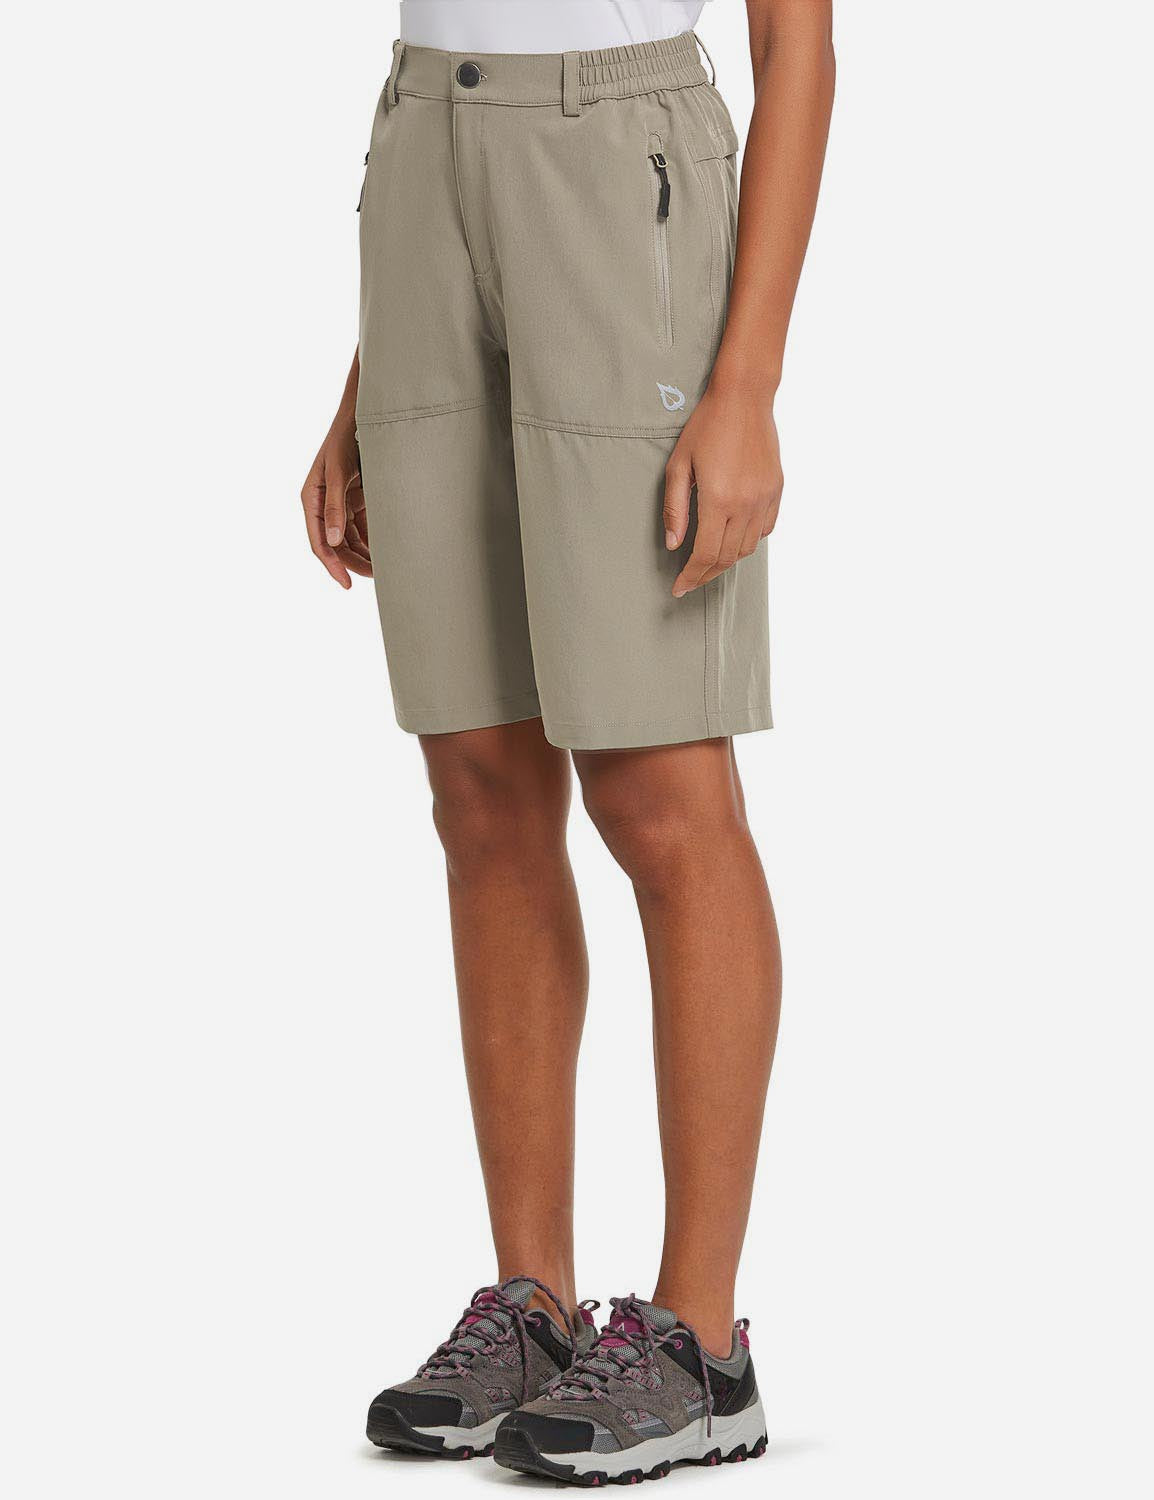 Baleaf Womens UPF50+ Quick Dry Water Repellent Pocketed Outdoor Shorts Khaki Side